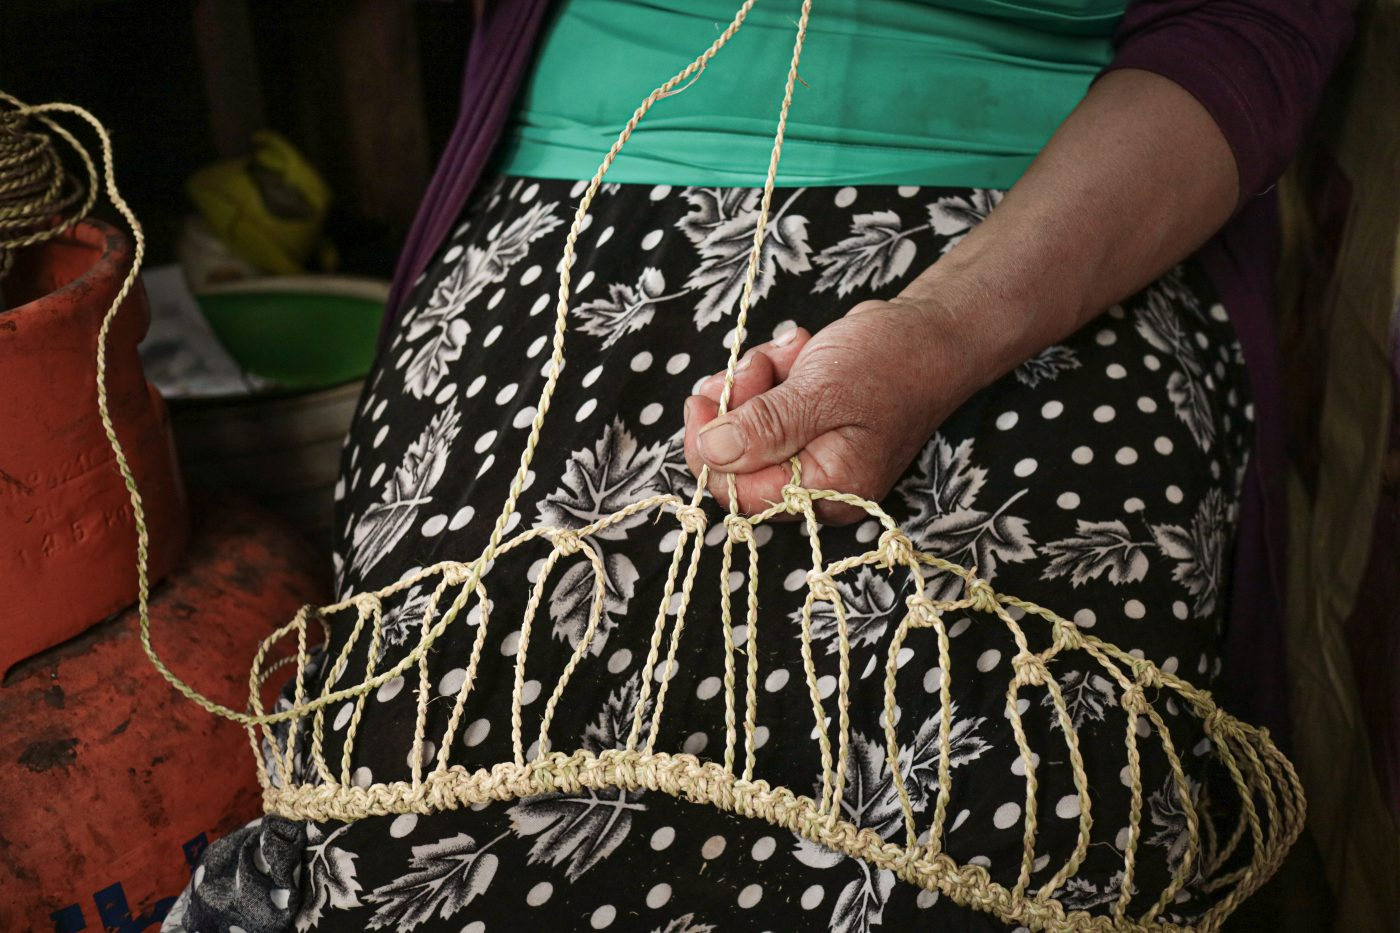 A woman's hands knotting a string like material into a traditional bag on her lap